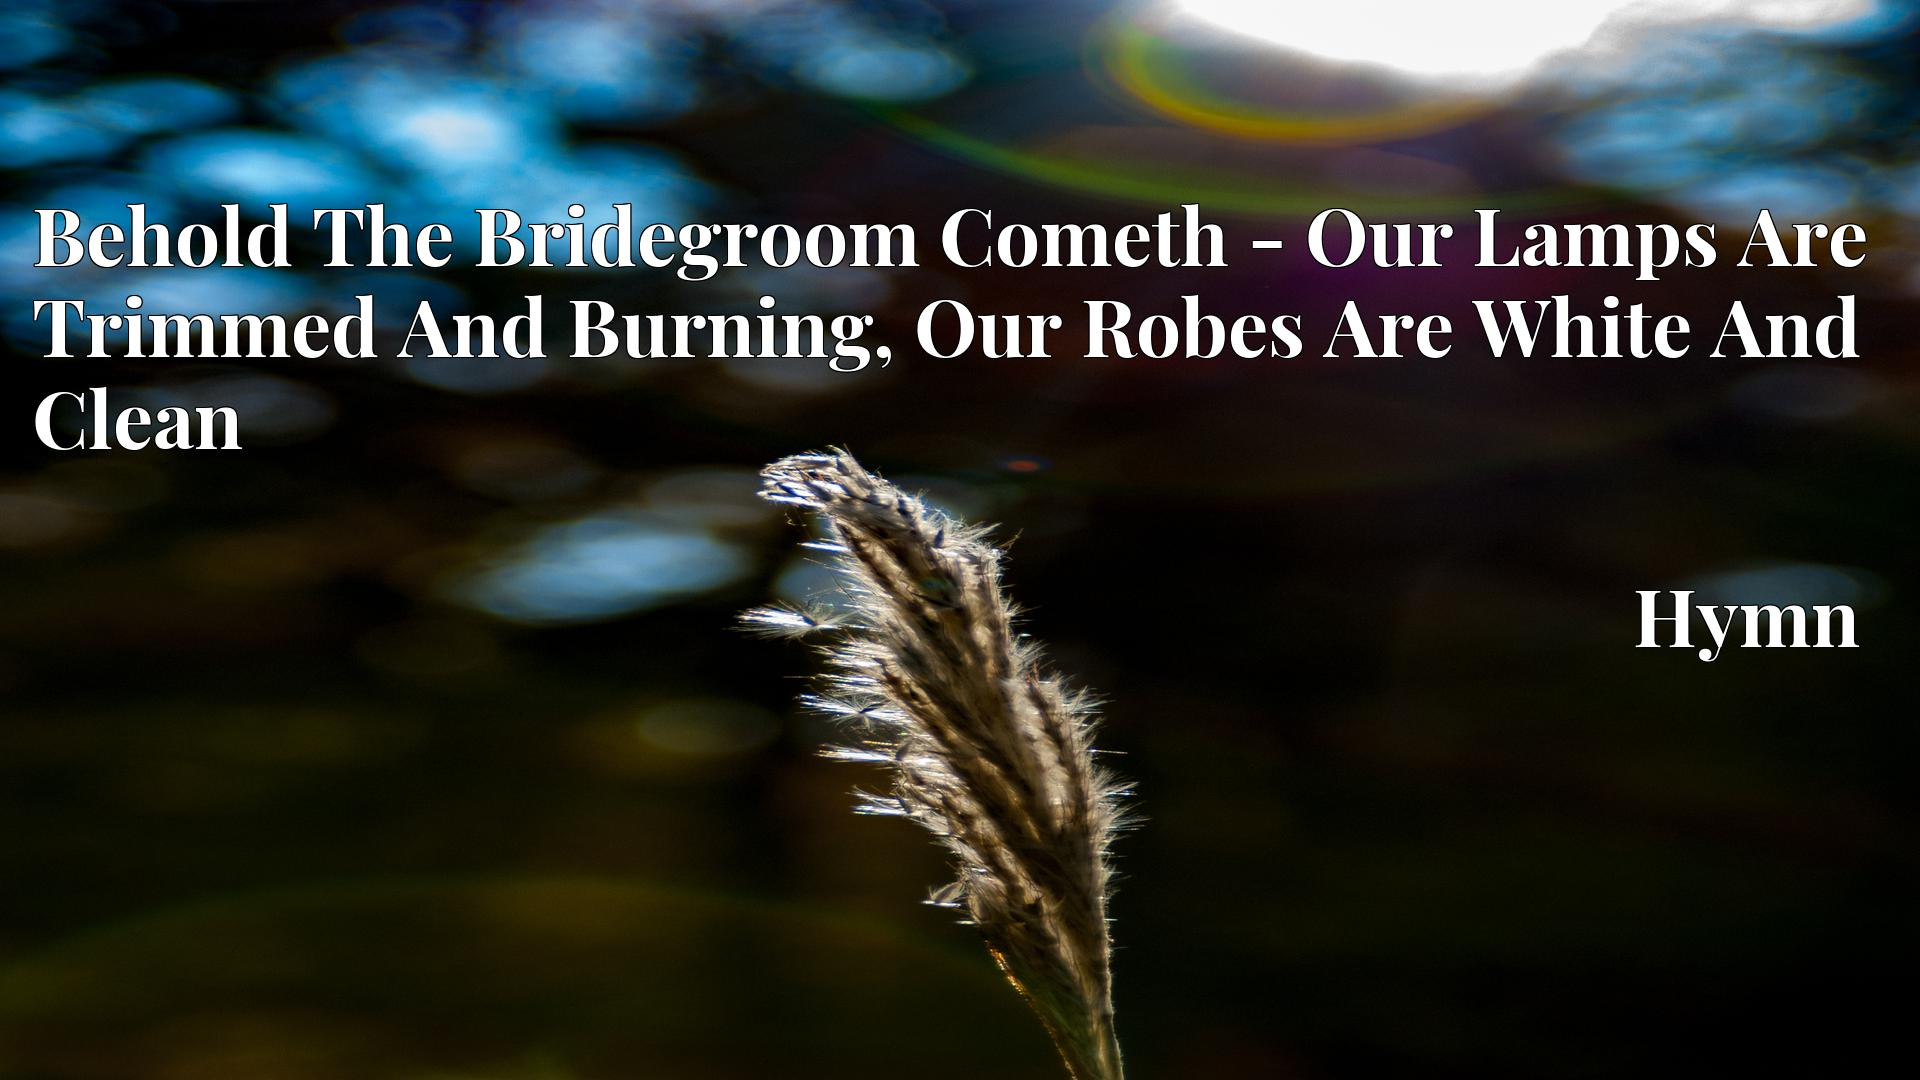 Behold The Bridegroom Cometh - Our Lamps Are Trimmed And Burning, Our Robes Are White And Clean - Hymn